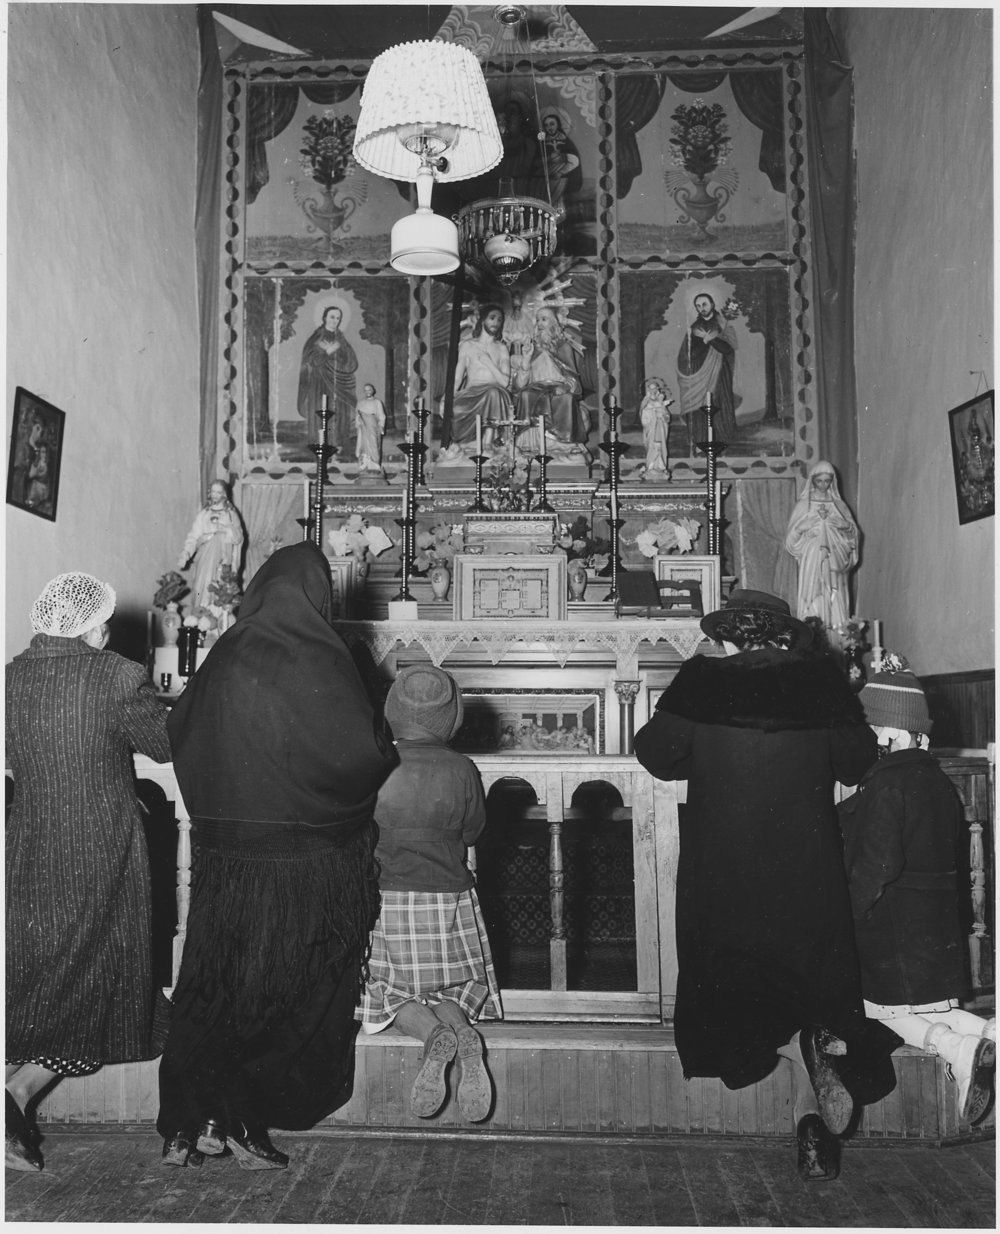 Taos_County,_New_Mexico._Prayer_before_altar_of_church_at_Arroyo_Seco._-_NARA_-_521929.jpg